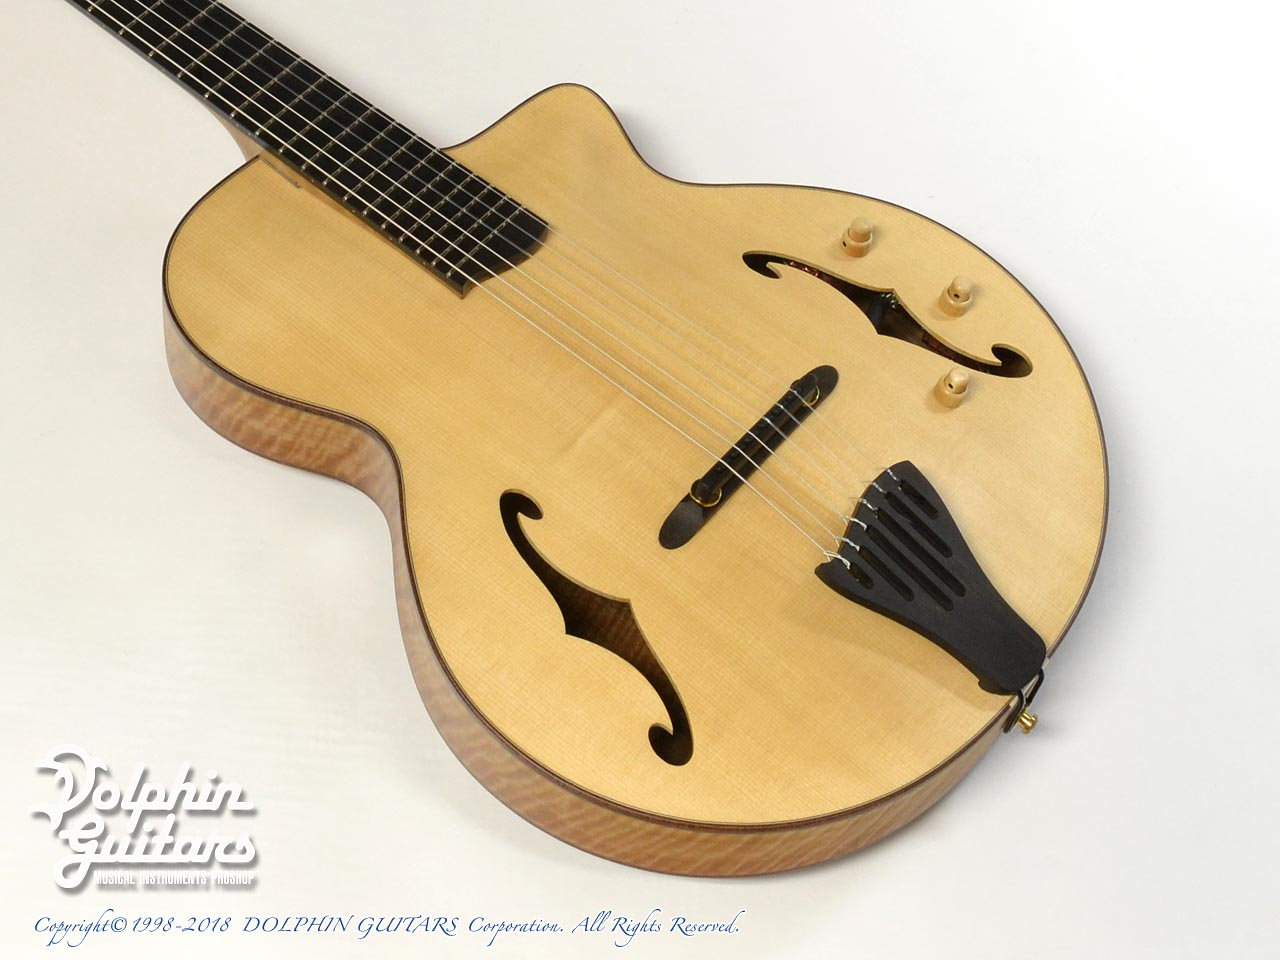 Borghino Guitars:BB1 Archtop with Nylon strings